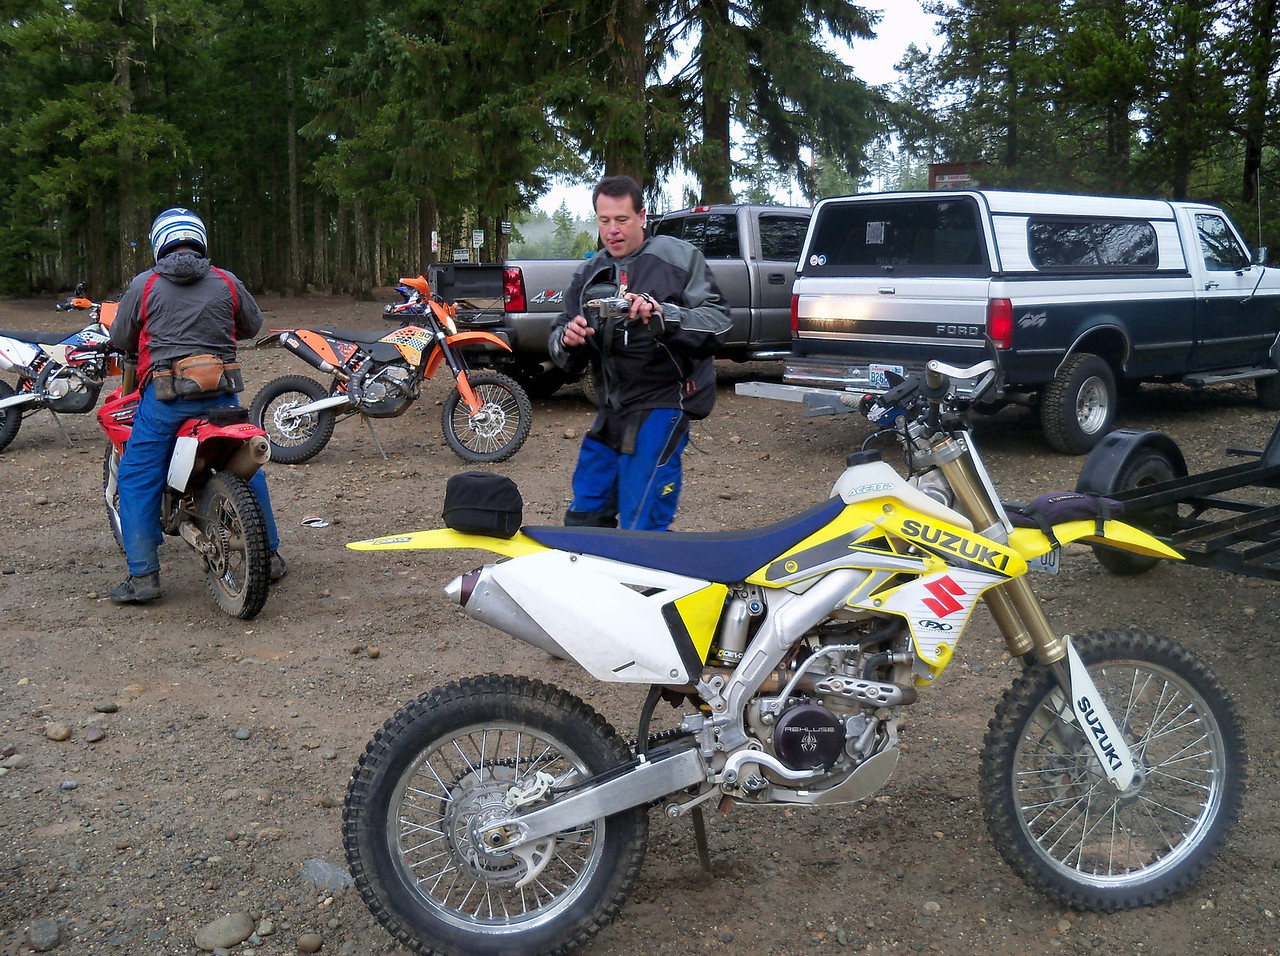 Sand Hill Gravel Pit, Marty taking some video of the bikes before we started